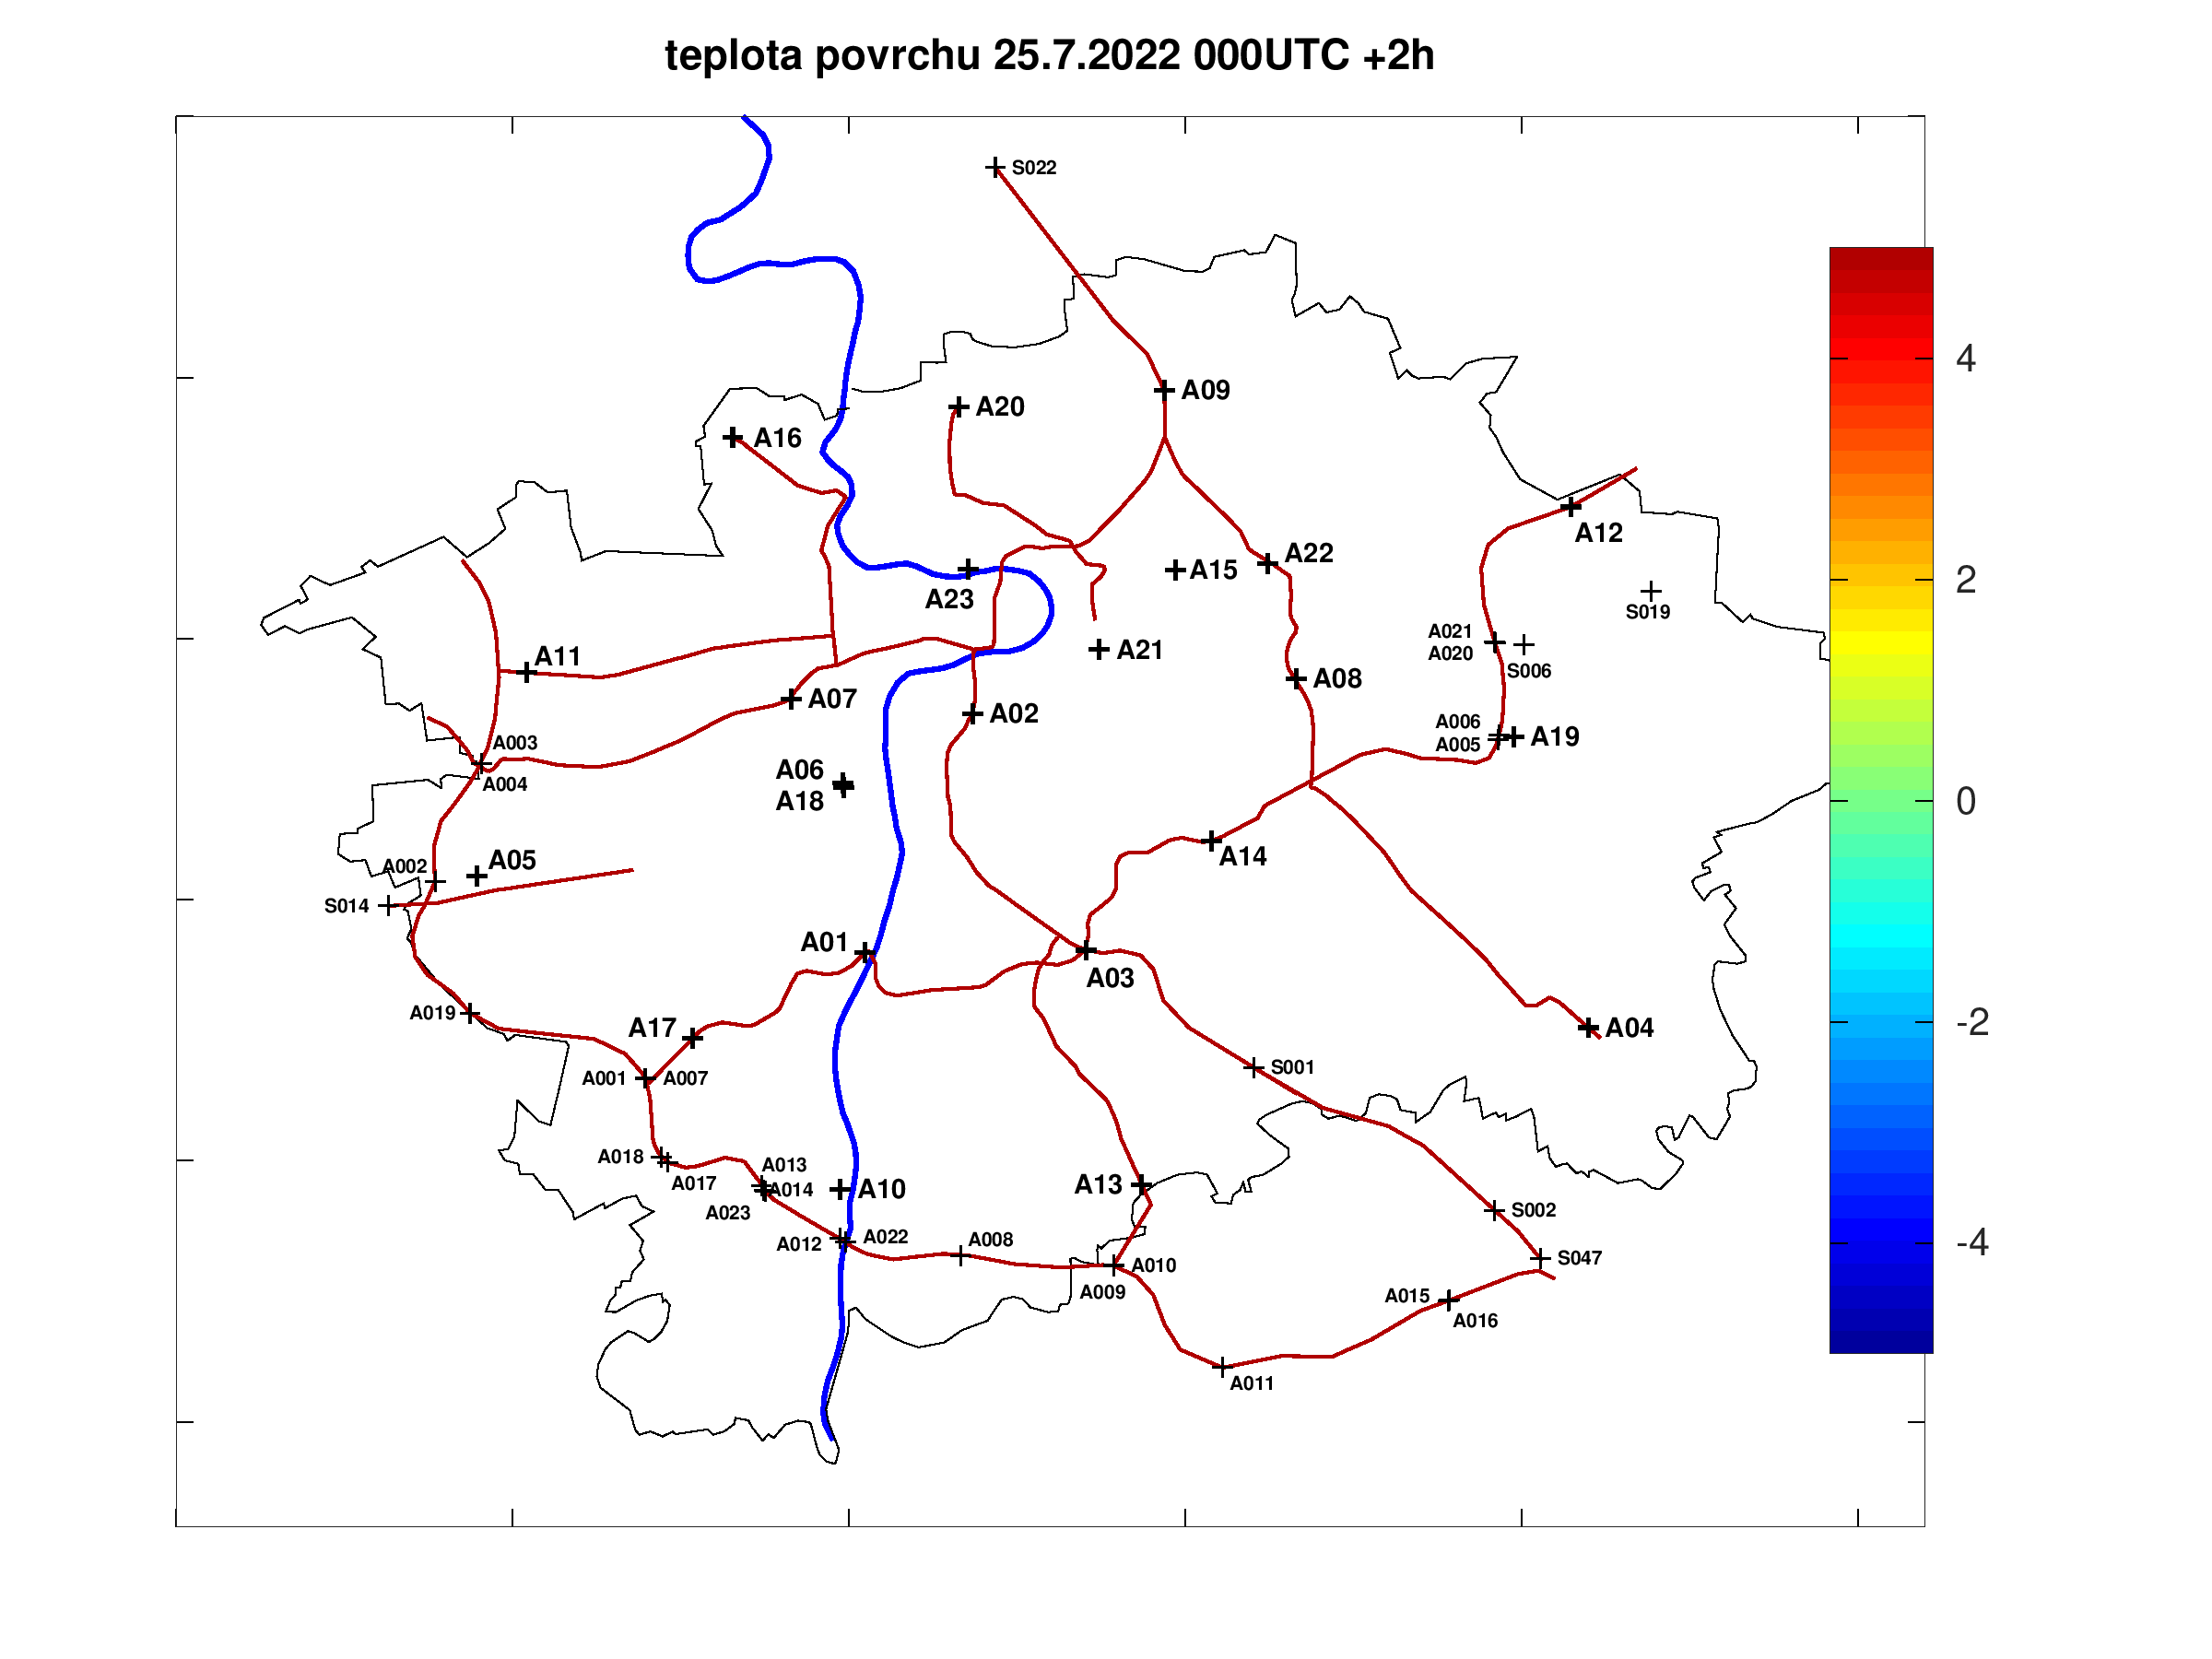 Road surface teperature forecast for Prague +2h